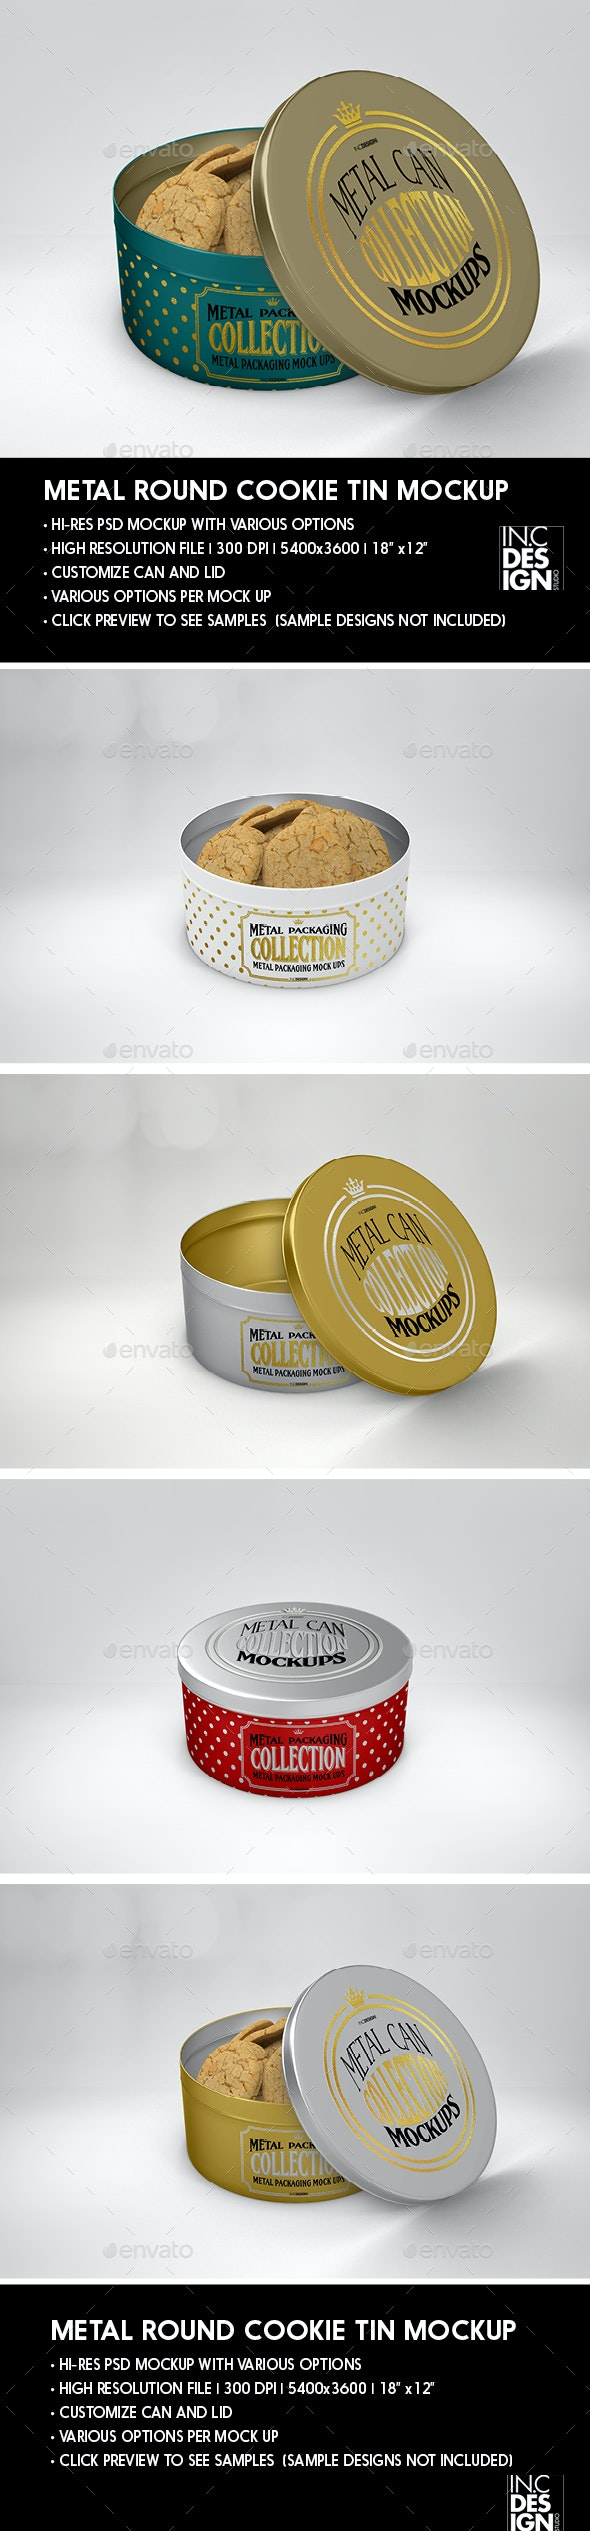 Metal Round Cookie Tin Packaging Mockup - Food and Drink Packaging